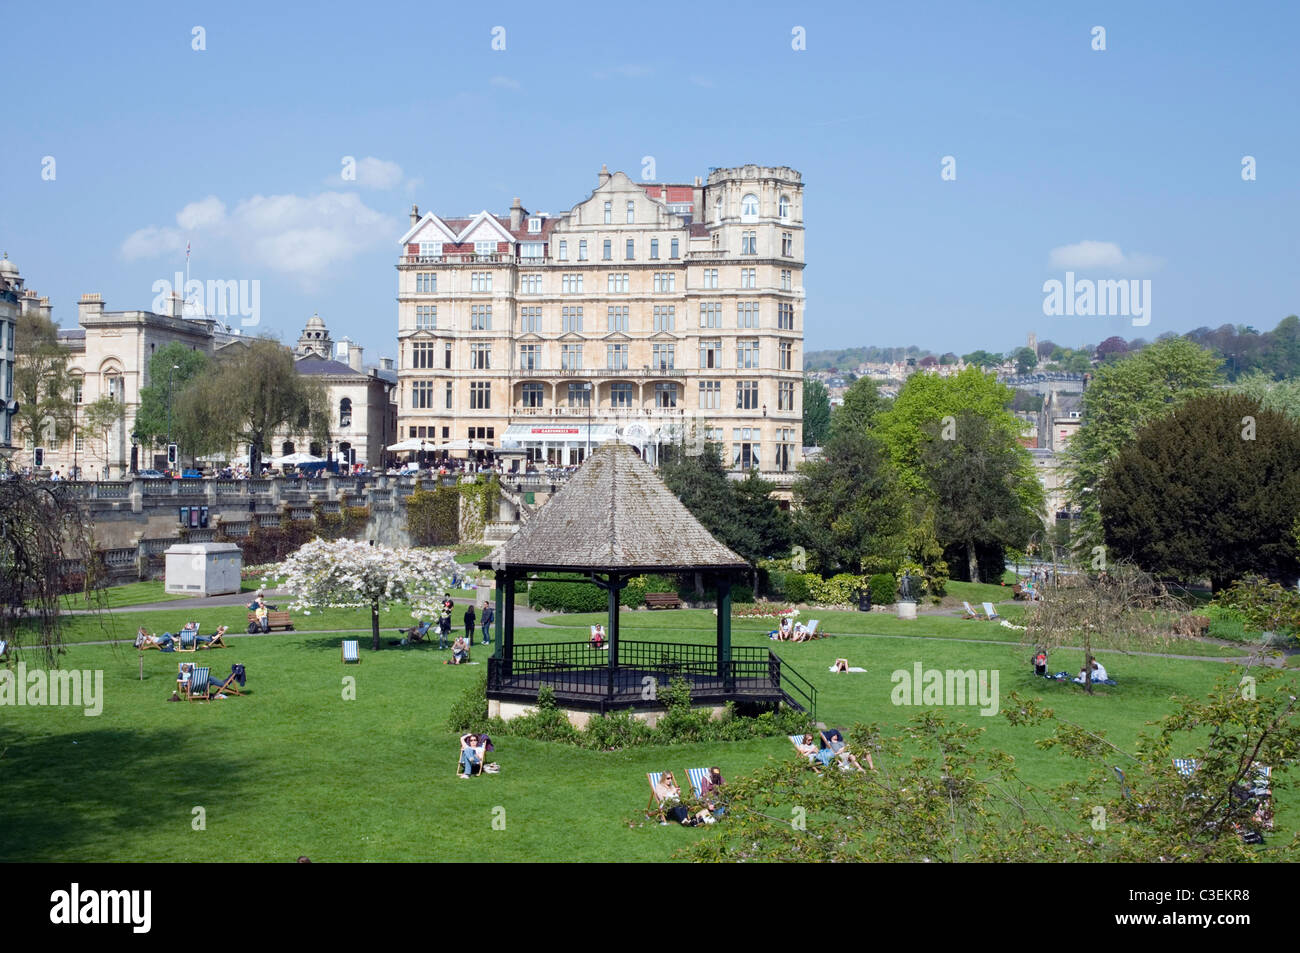 bandstand in park City of Bath England - Stock Image